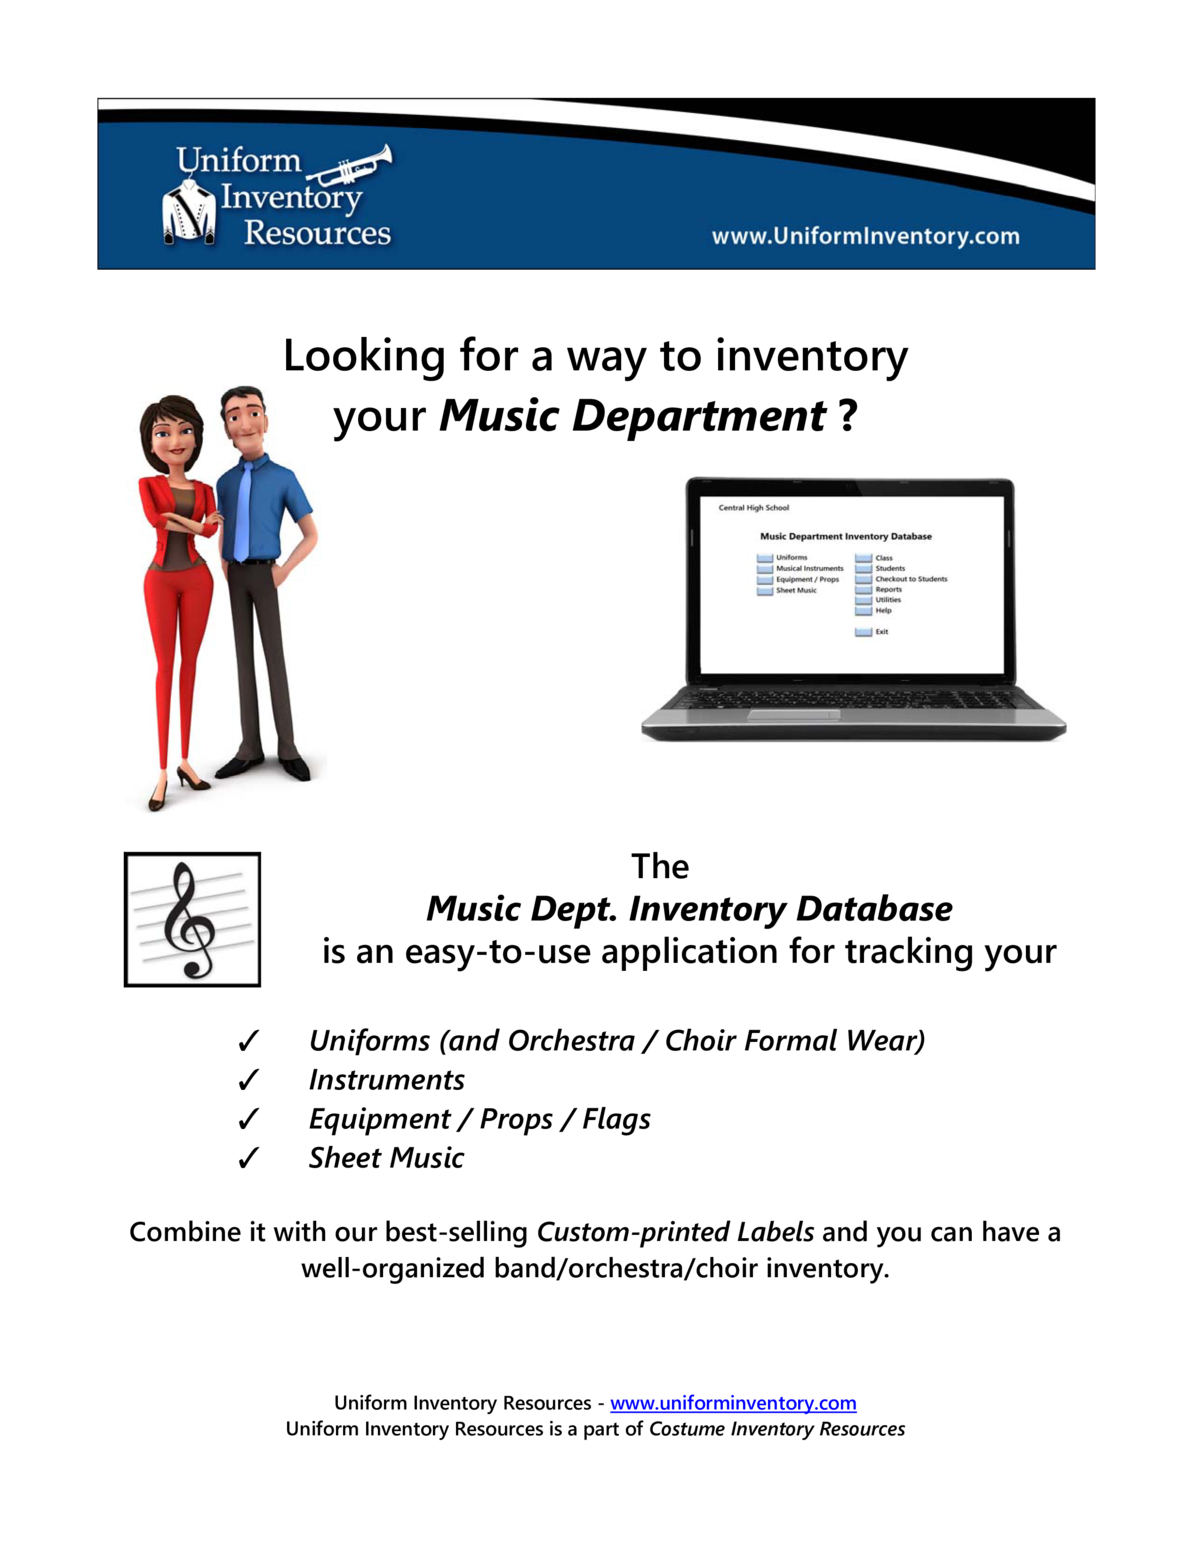 Music Dept Inventory Database